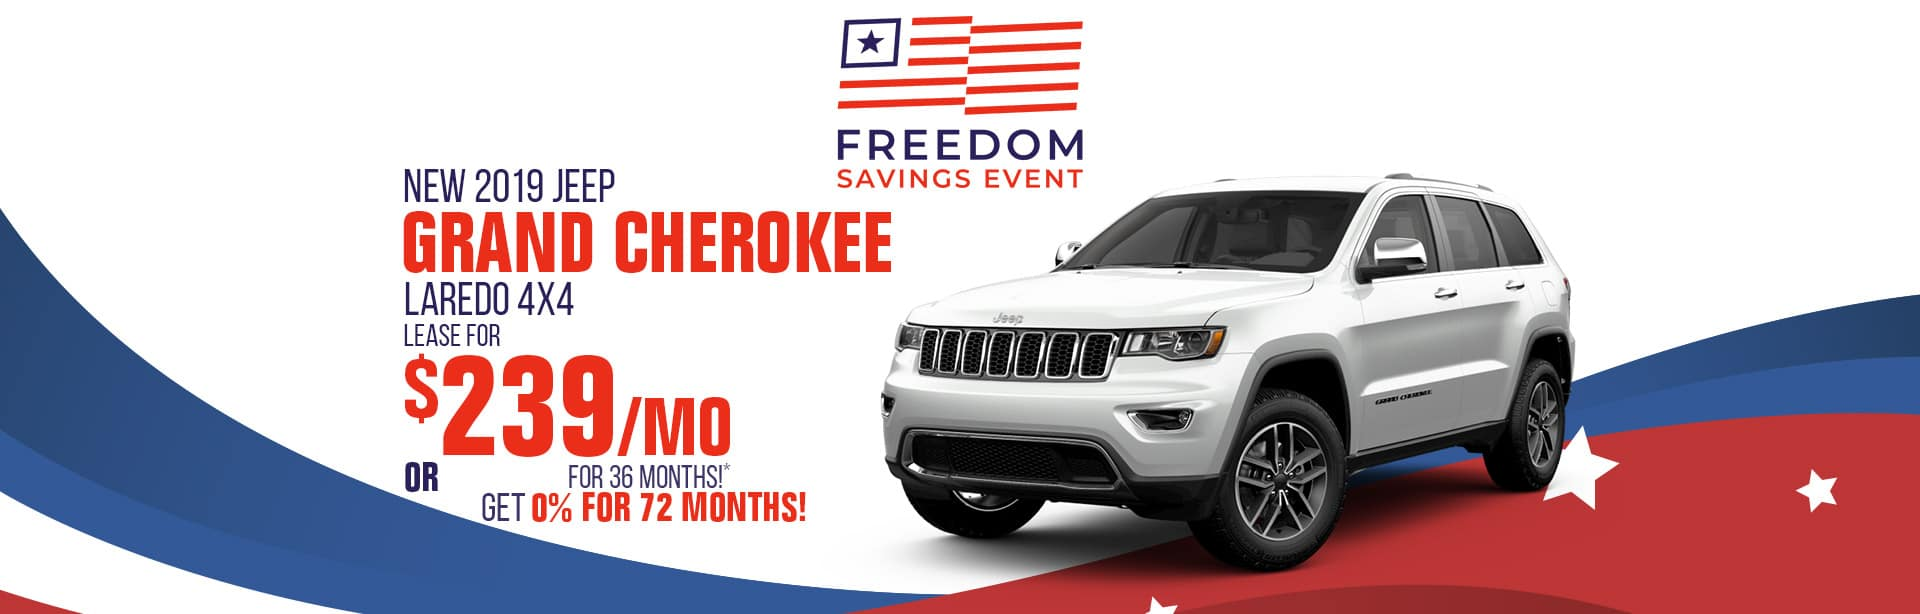 Best deal on a New Jeep Grand Cherokee in Brazil, Indiana